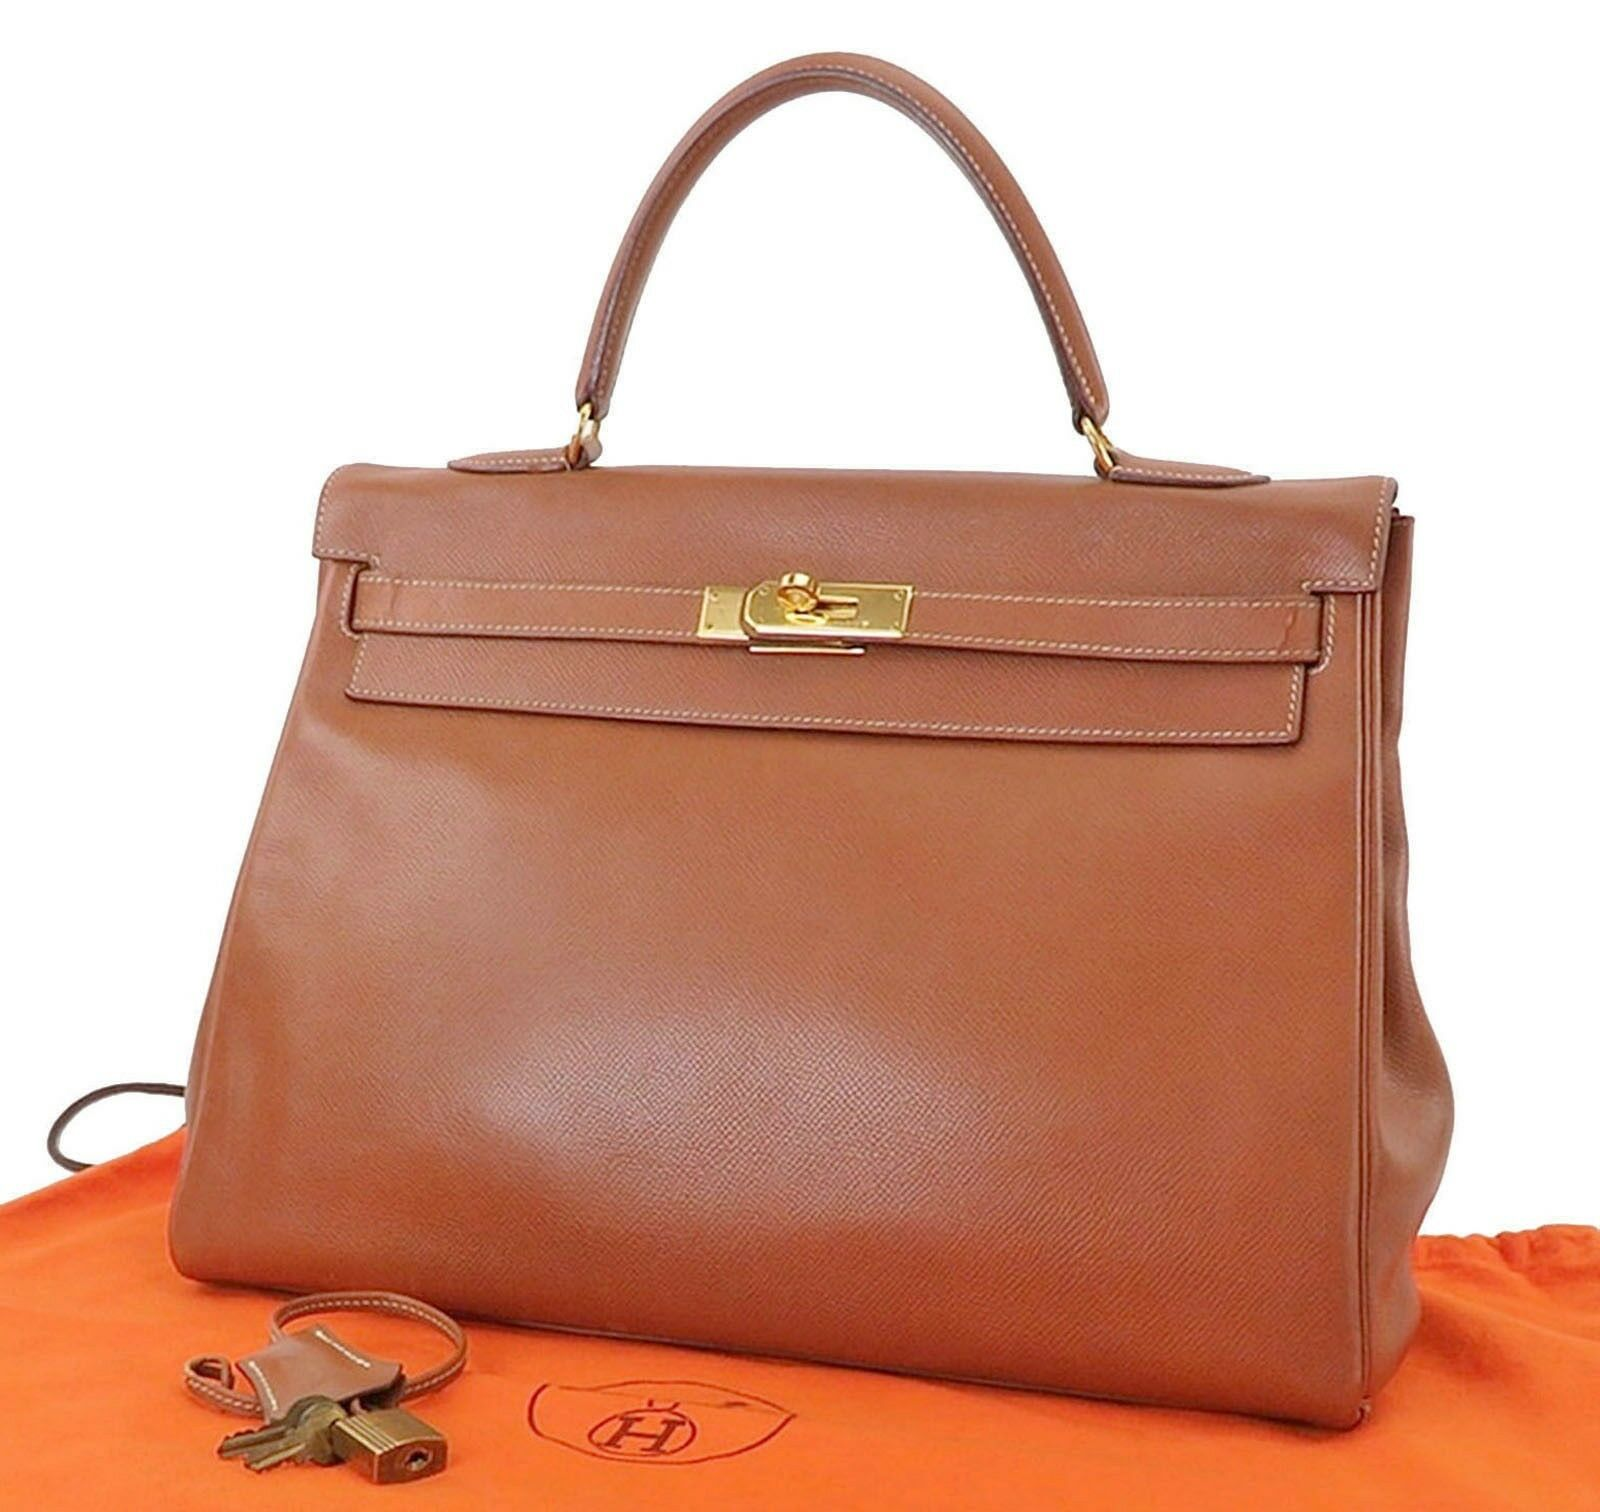 Authentic HERMES Kelly 35 Brown Calfskin Leather Hand Bag Purse #25262